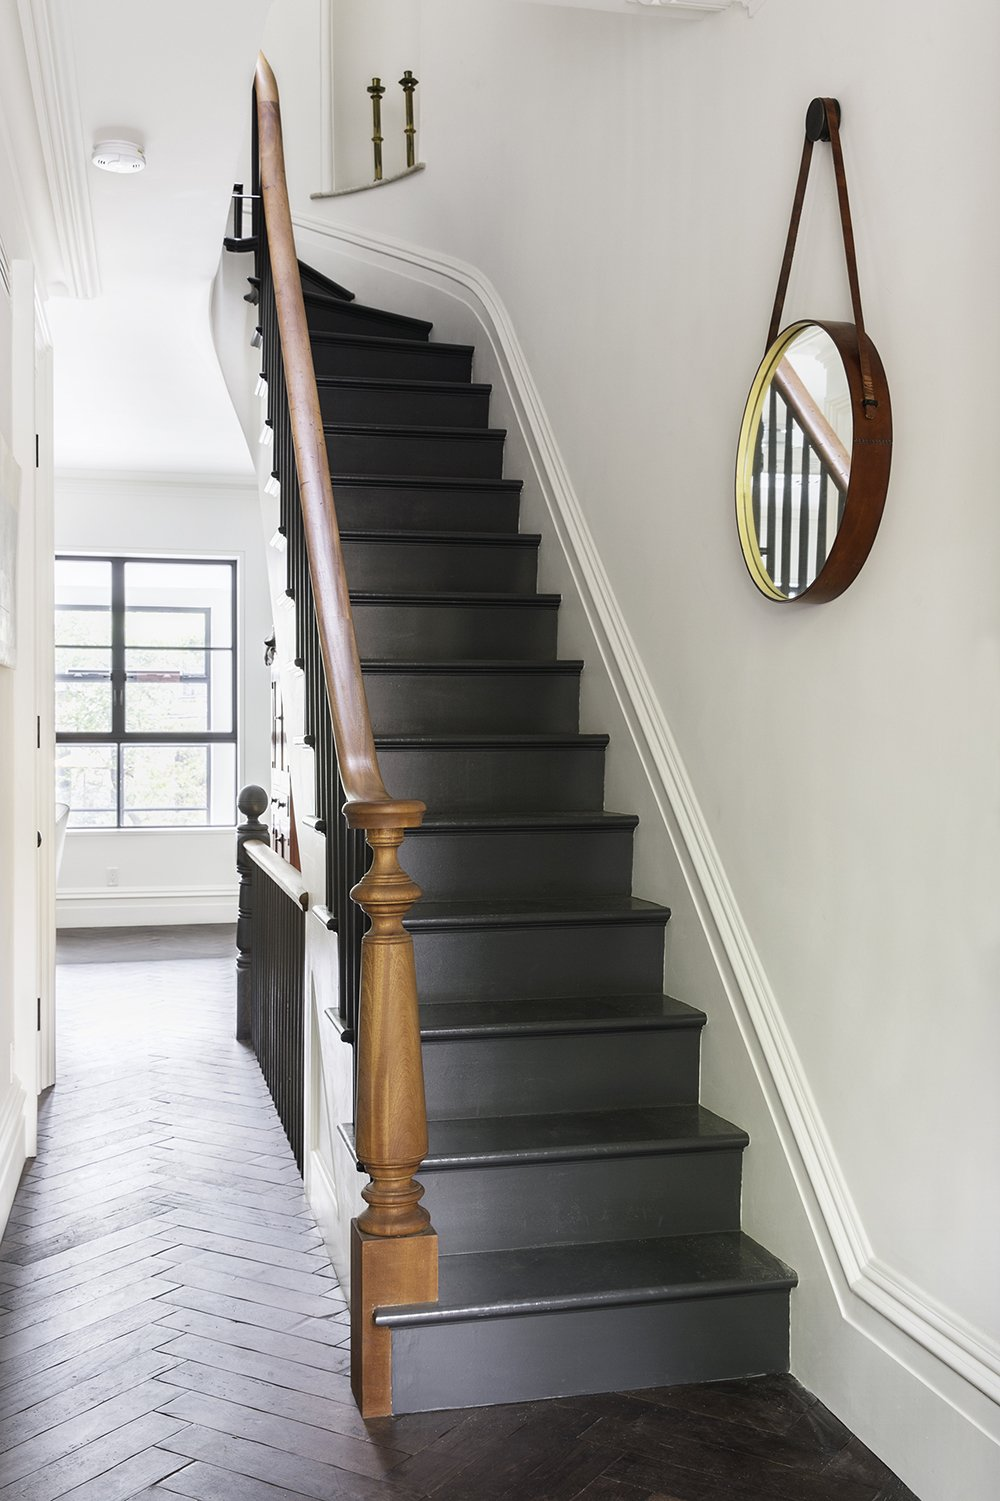 Reclaimed oak with a custom finish by LV Wood surrounds a staircase in a herringbone pattern. The new stairs are painted off black by Farrow & Ball, and the handrail that lines them is of salvaged mahogany.  190+ Best Modern Staircase Ideas from A Neglected Brooklyn Townhouse Becomes a Home That's Primed for Entertaining